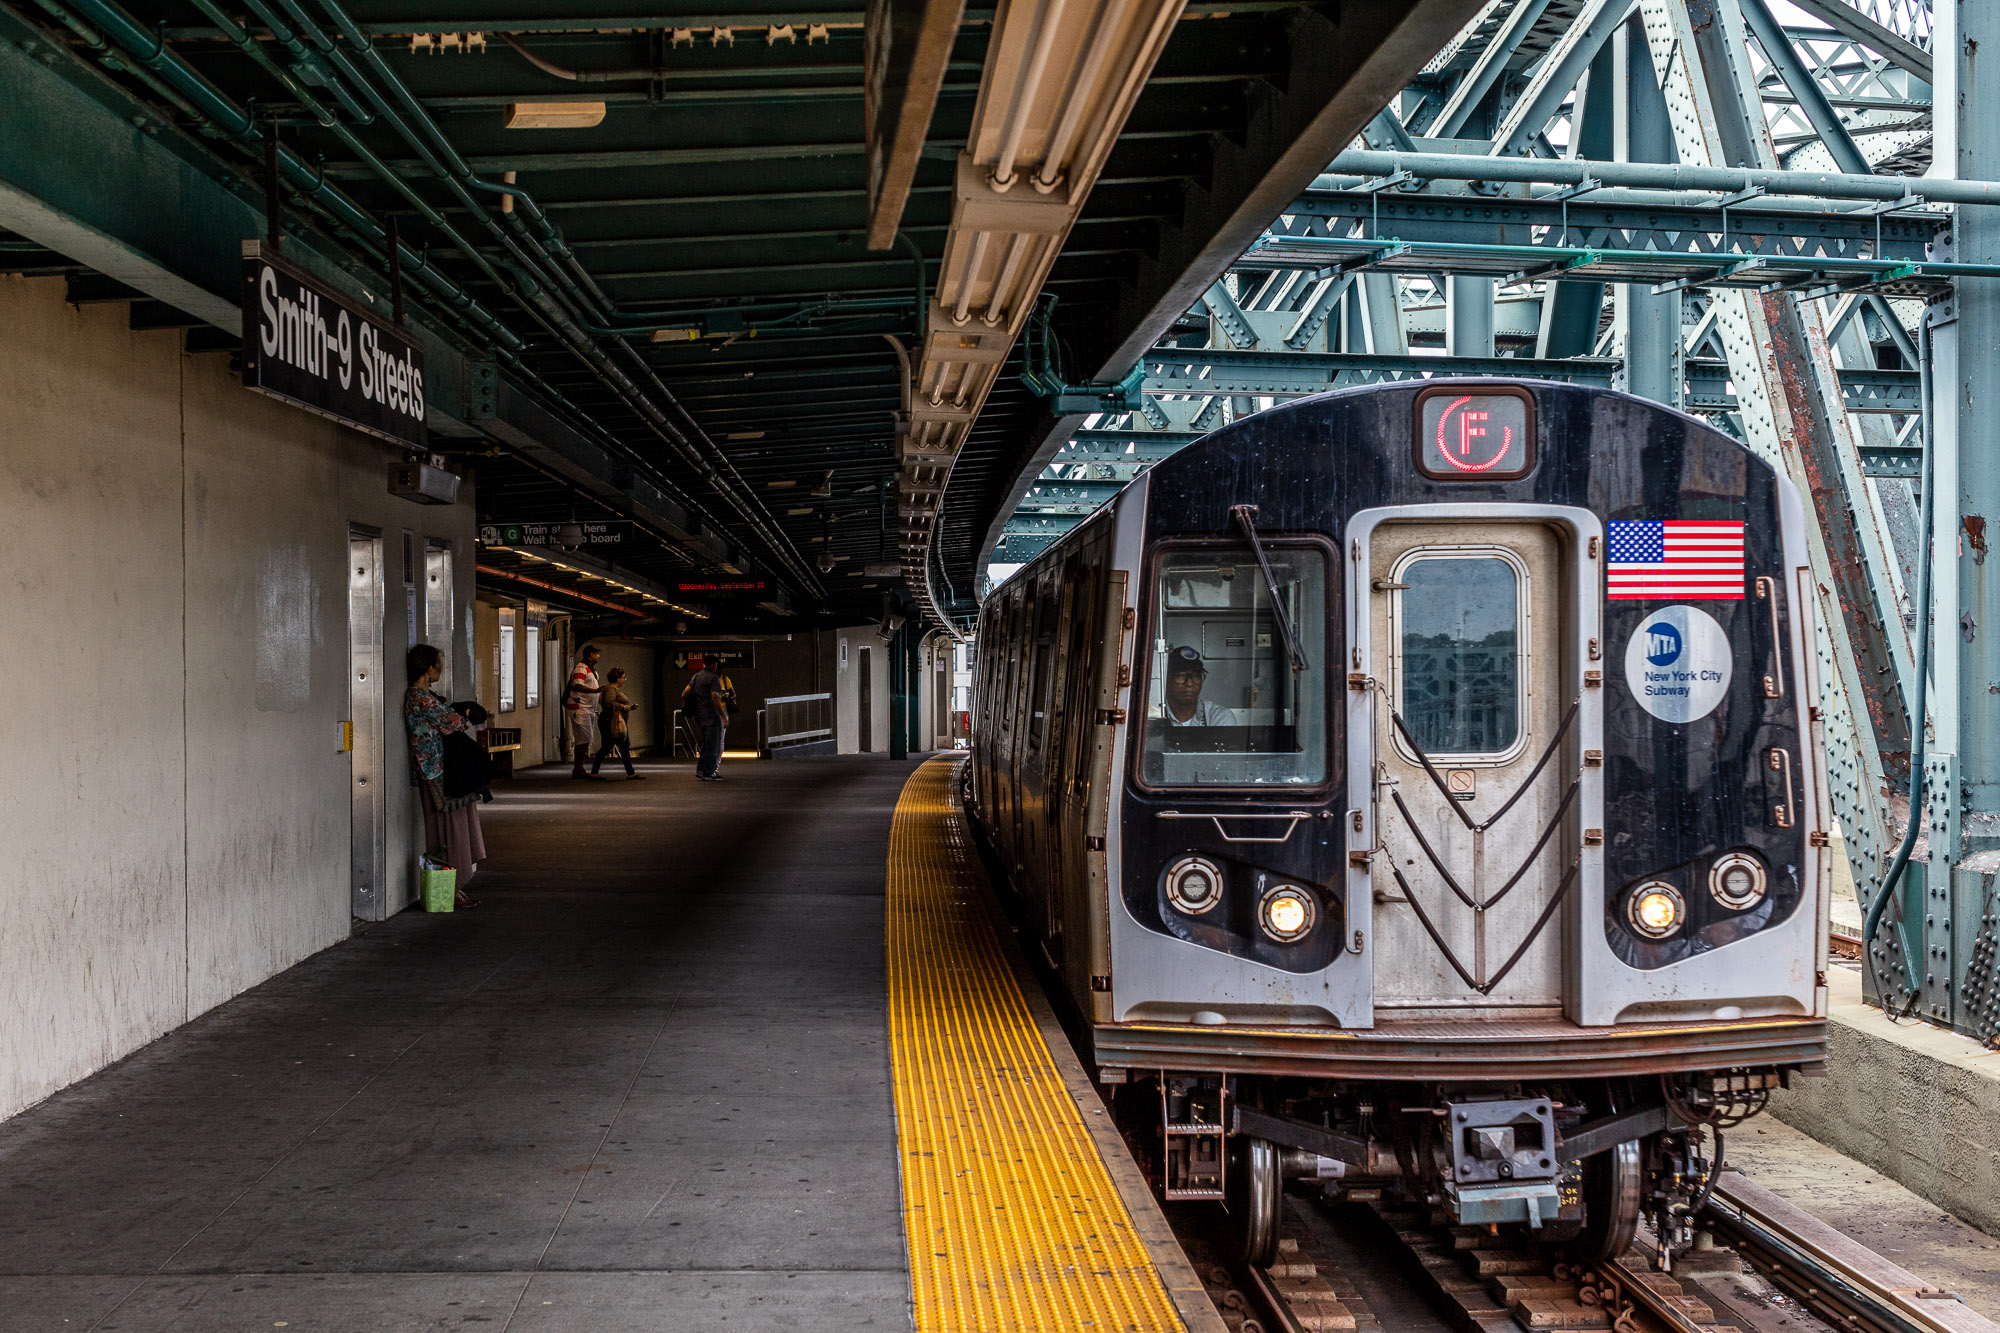 The F train pulls into the Smith-9th Streets station.